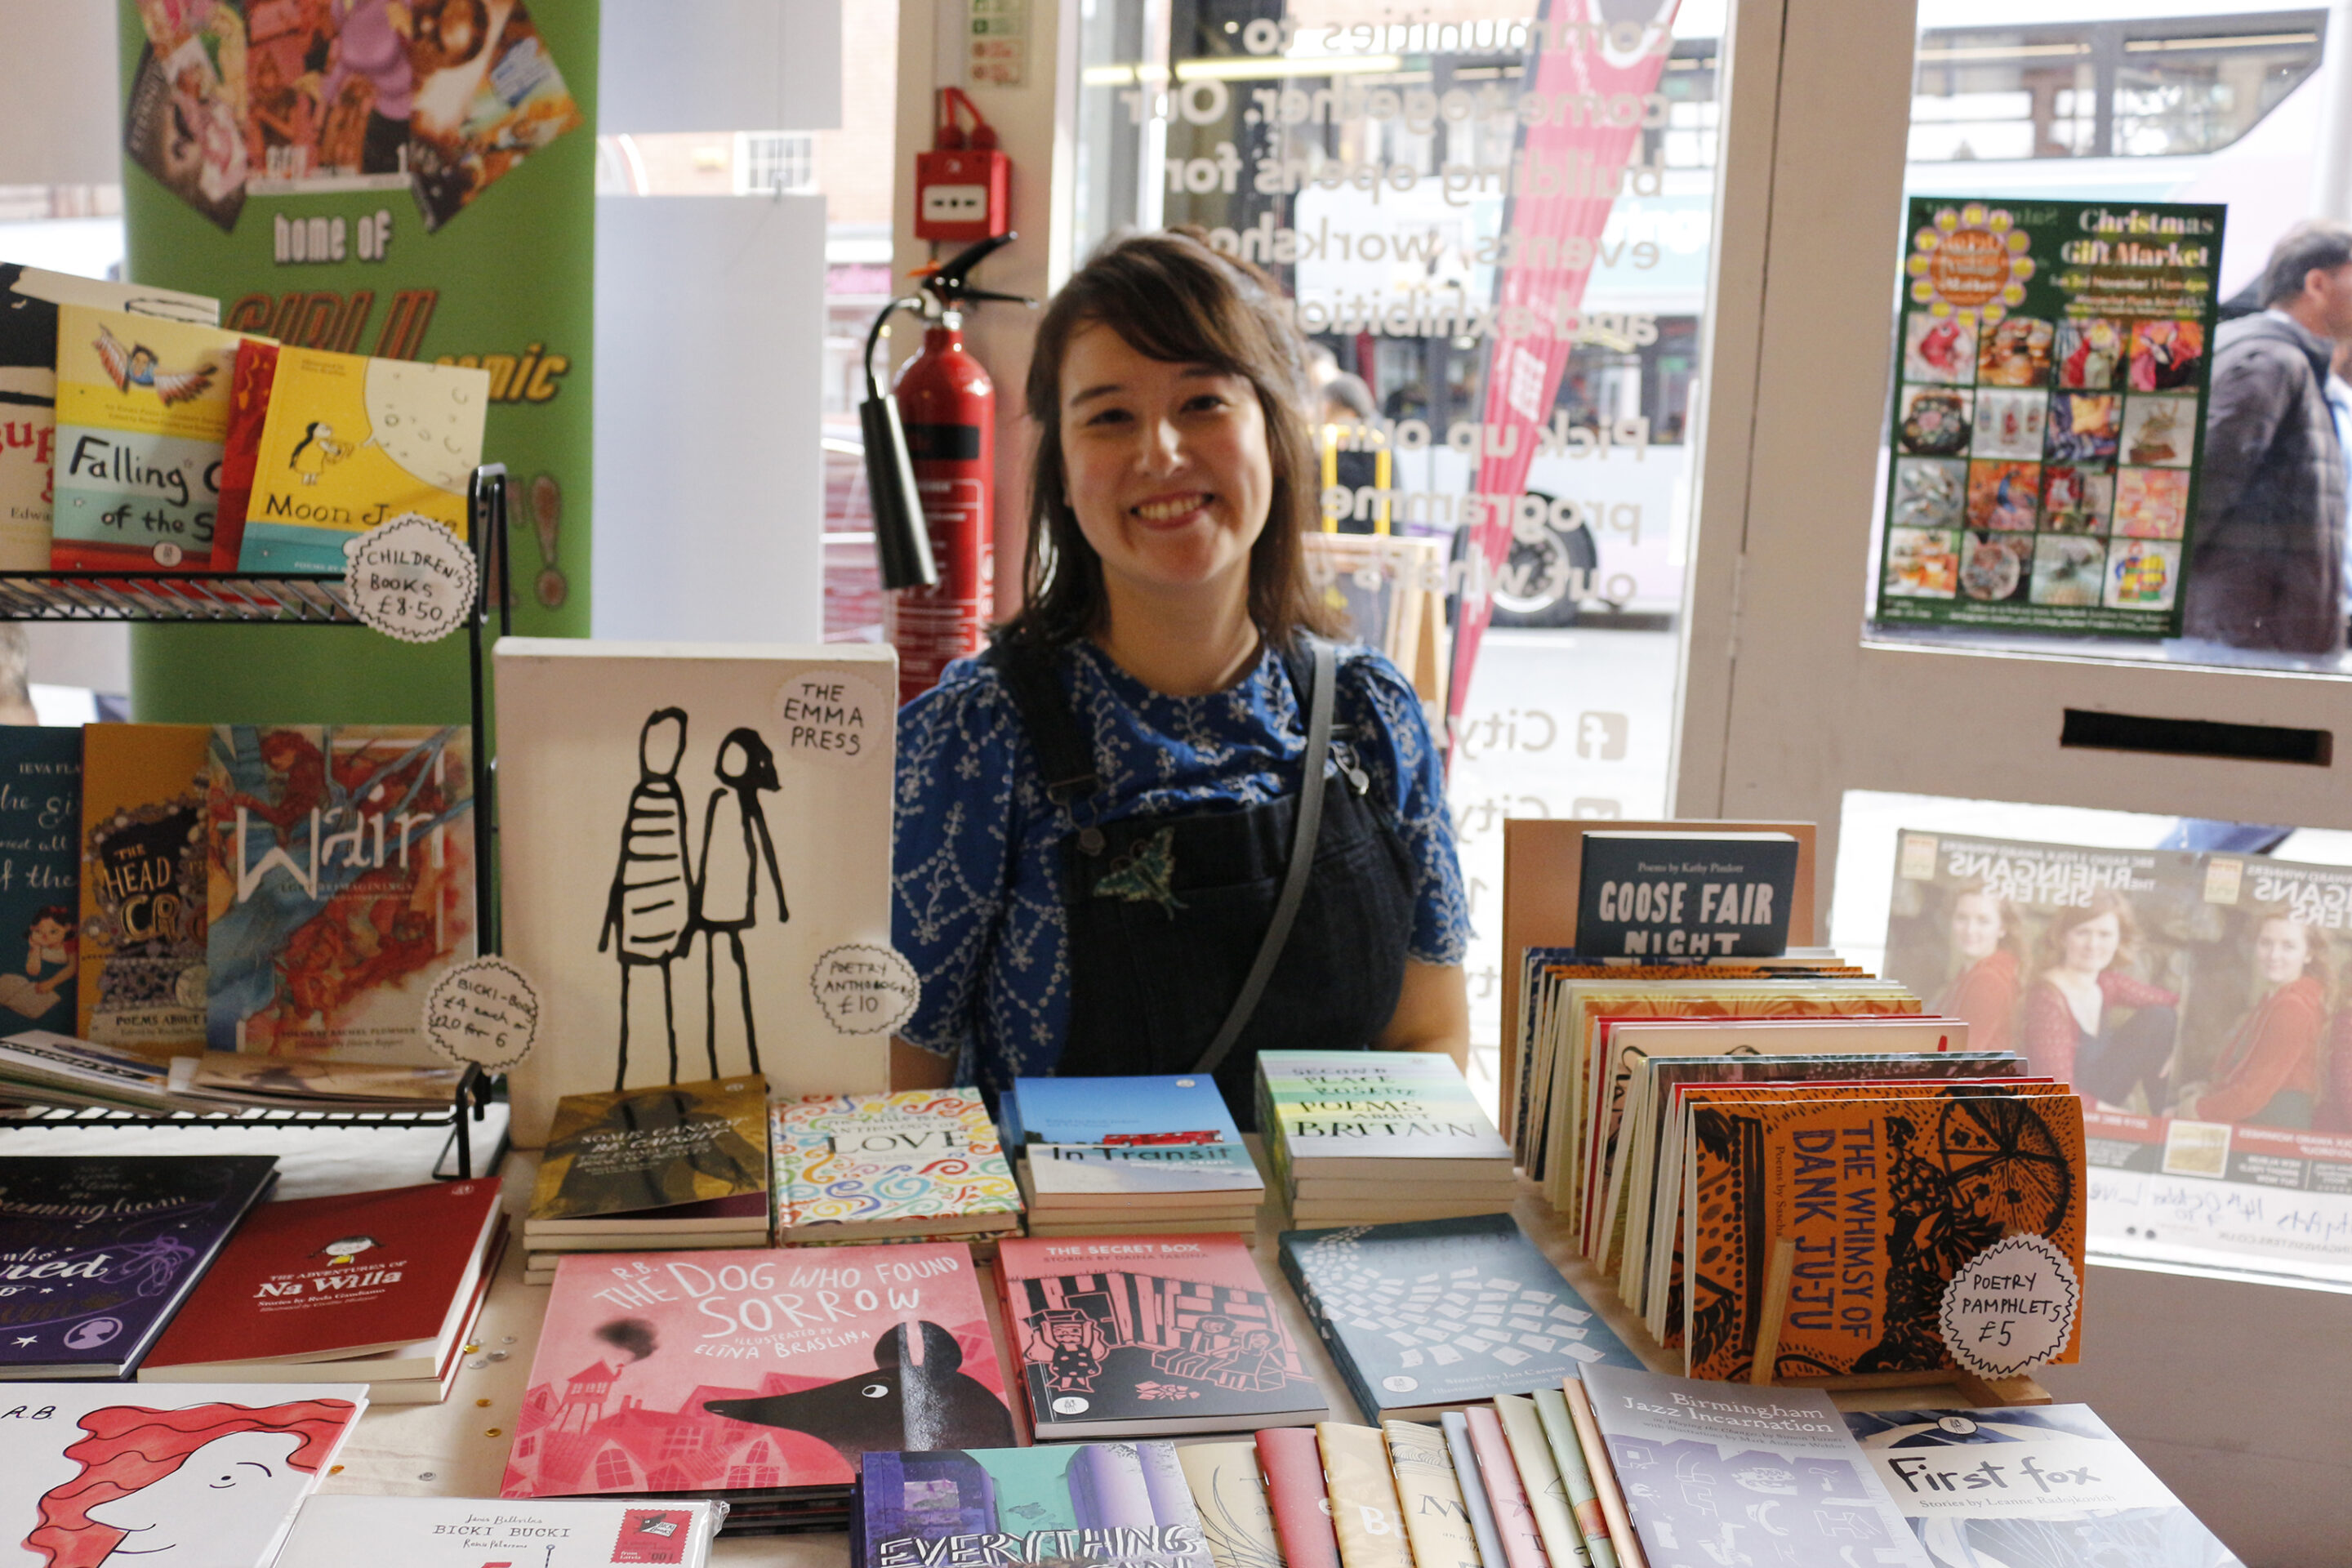 Emma Dai'an Wright sitting behind a pile of books at a bookshop.